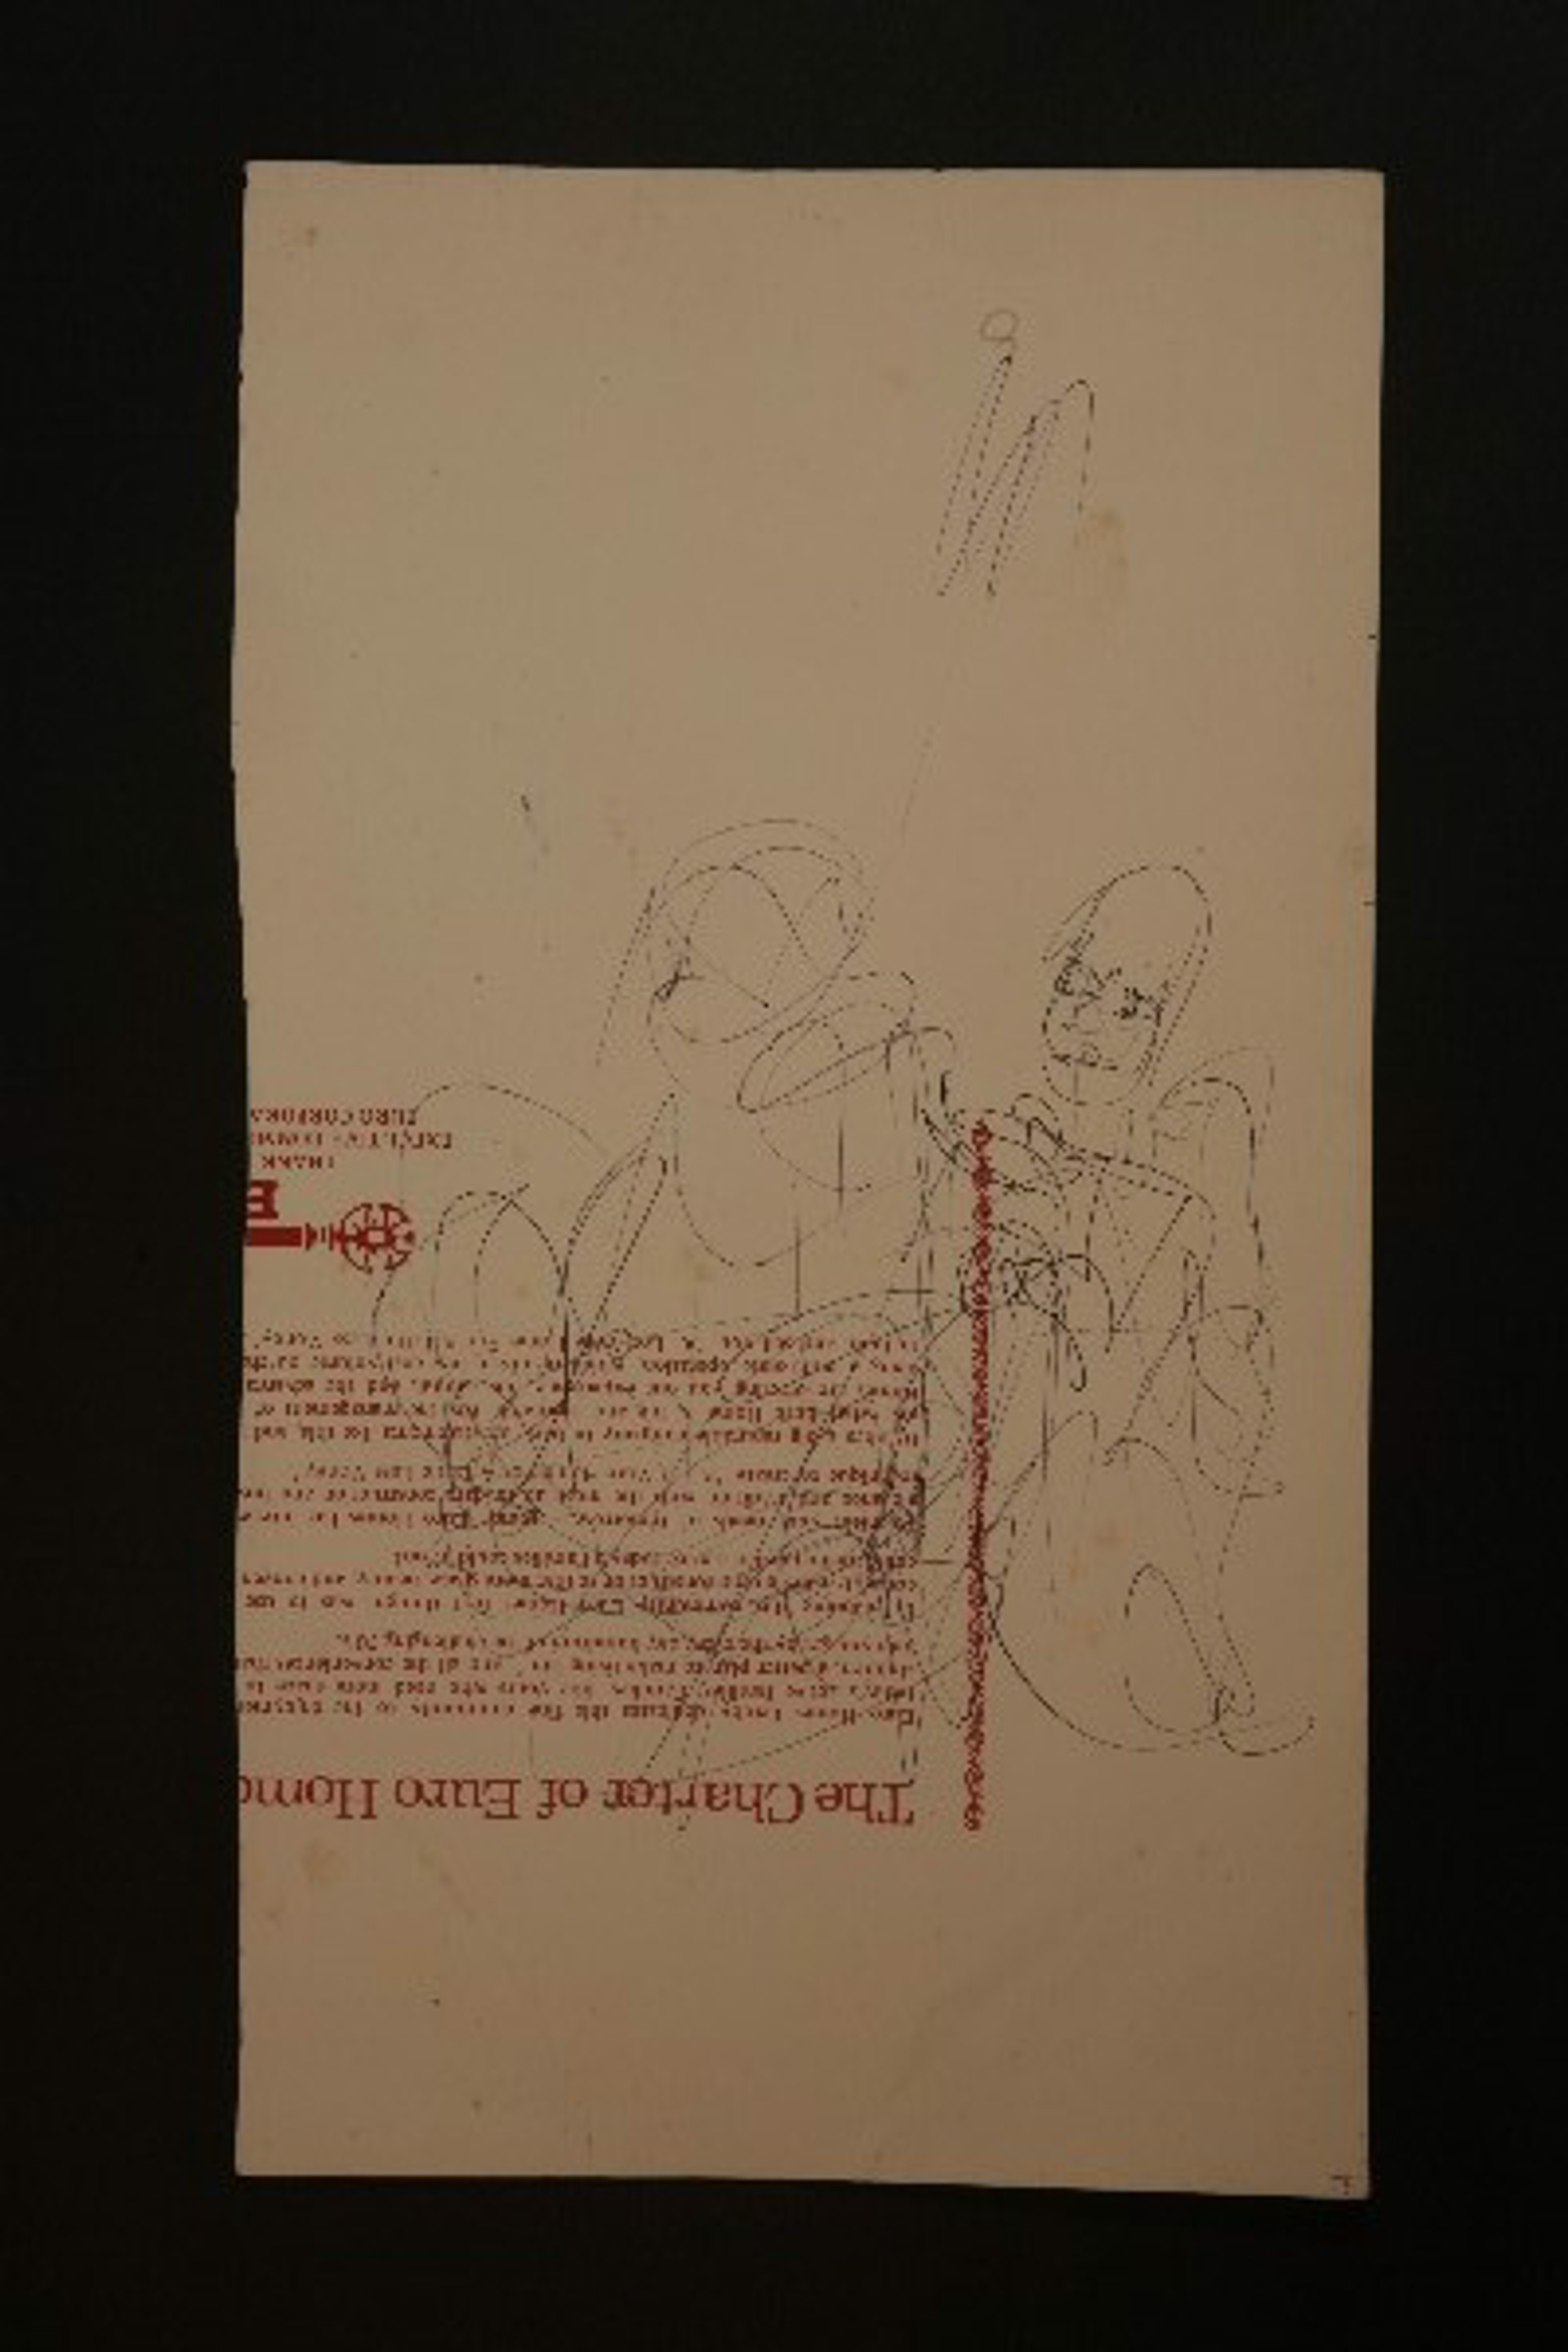 Drawing From the 1970's #26 by Purvis Young (1943 - 2010)